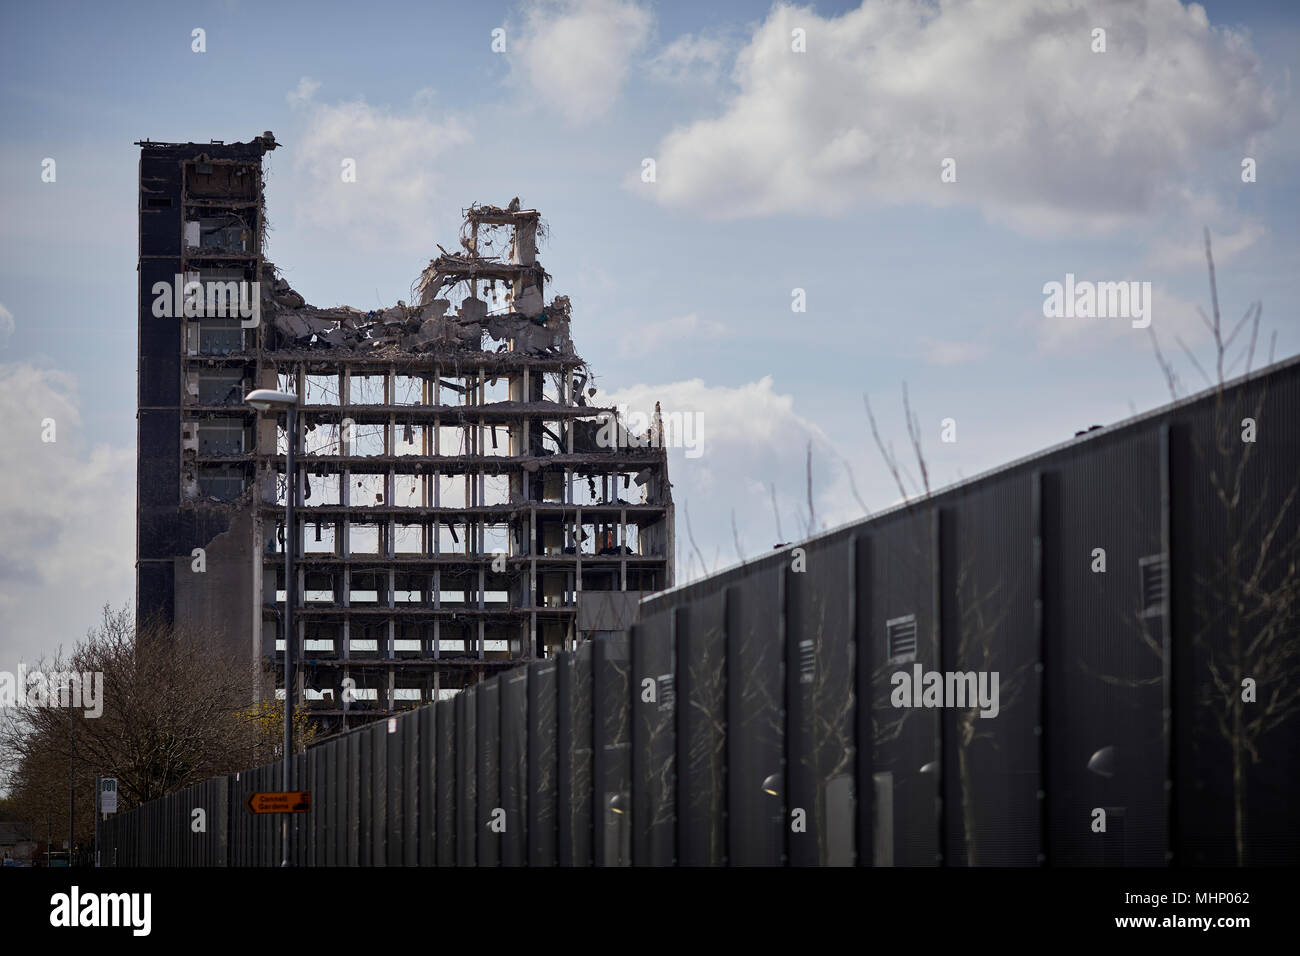 Demolition of Manchester ICL tower in Gorton Designed by architects Cruikshank and Seward, house the cutting-edge computing power of the time, the ICT - Stock Image